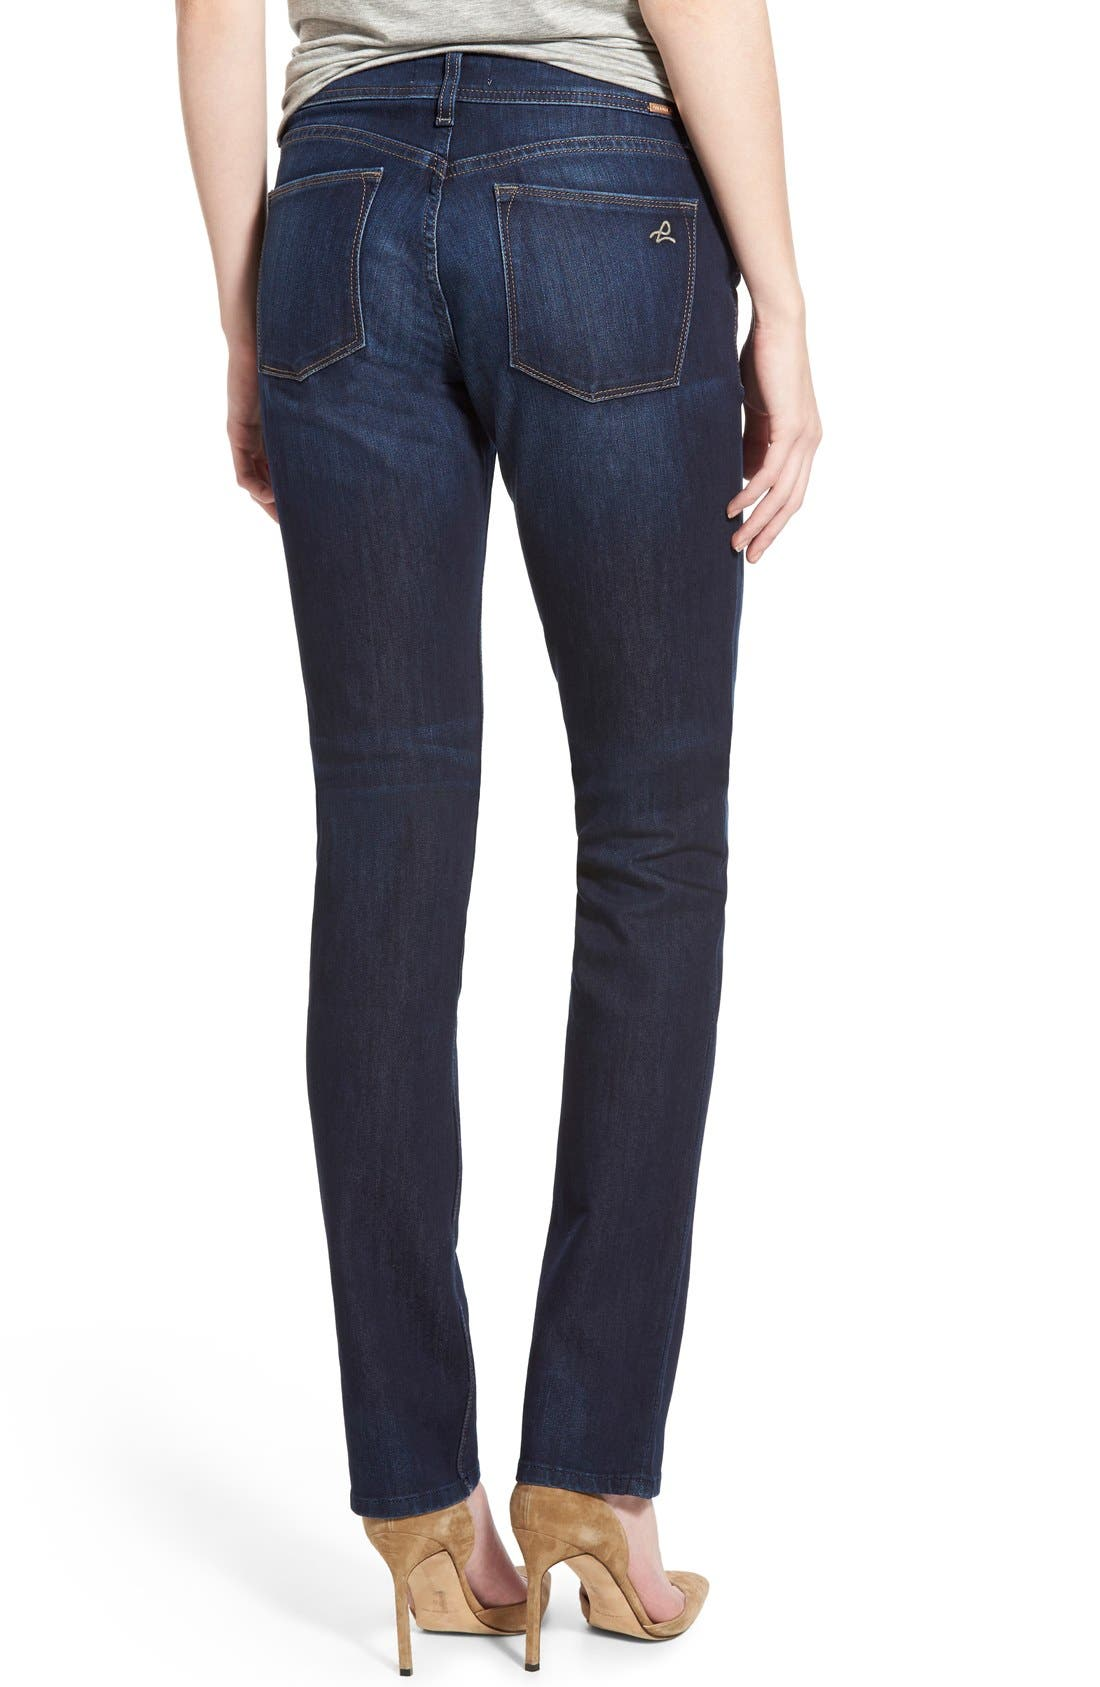 'Coco' Curvy Straight Jeans,                             Alternate thumbnail 2, color,                             Solo